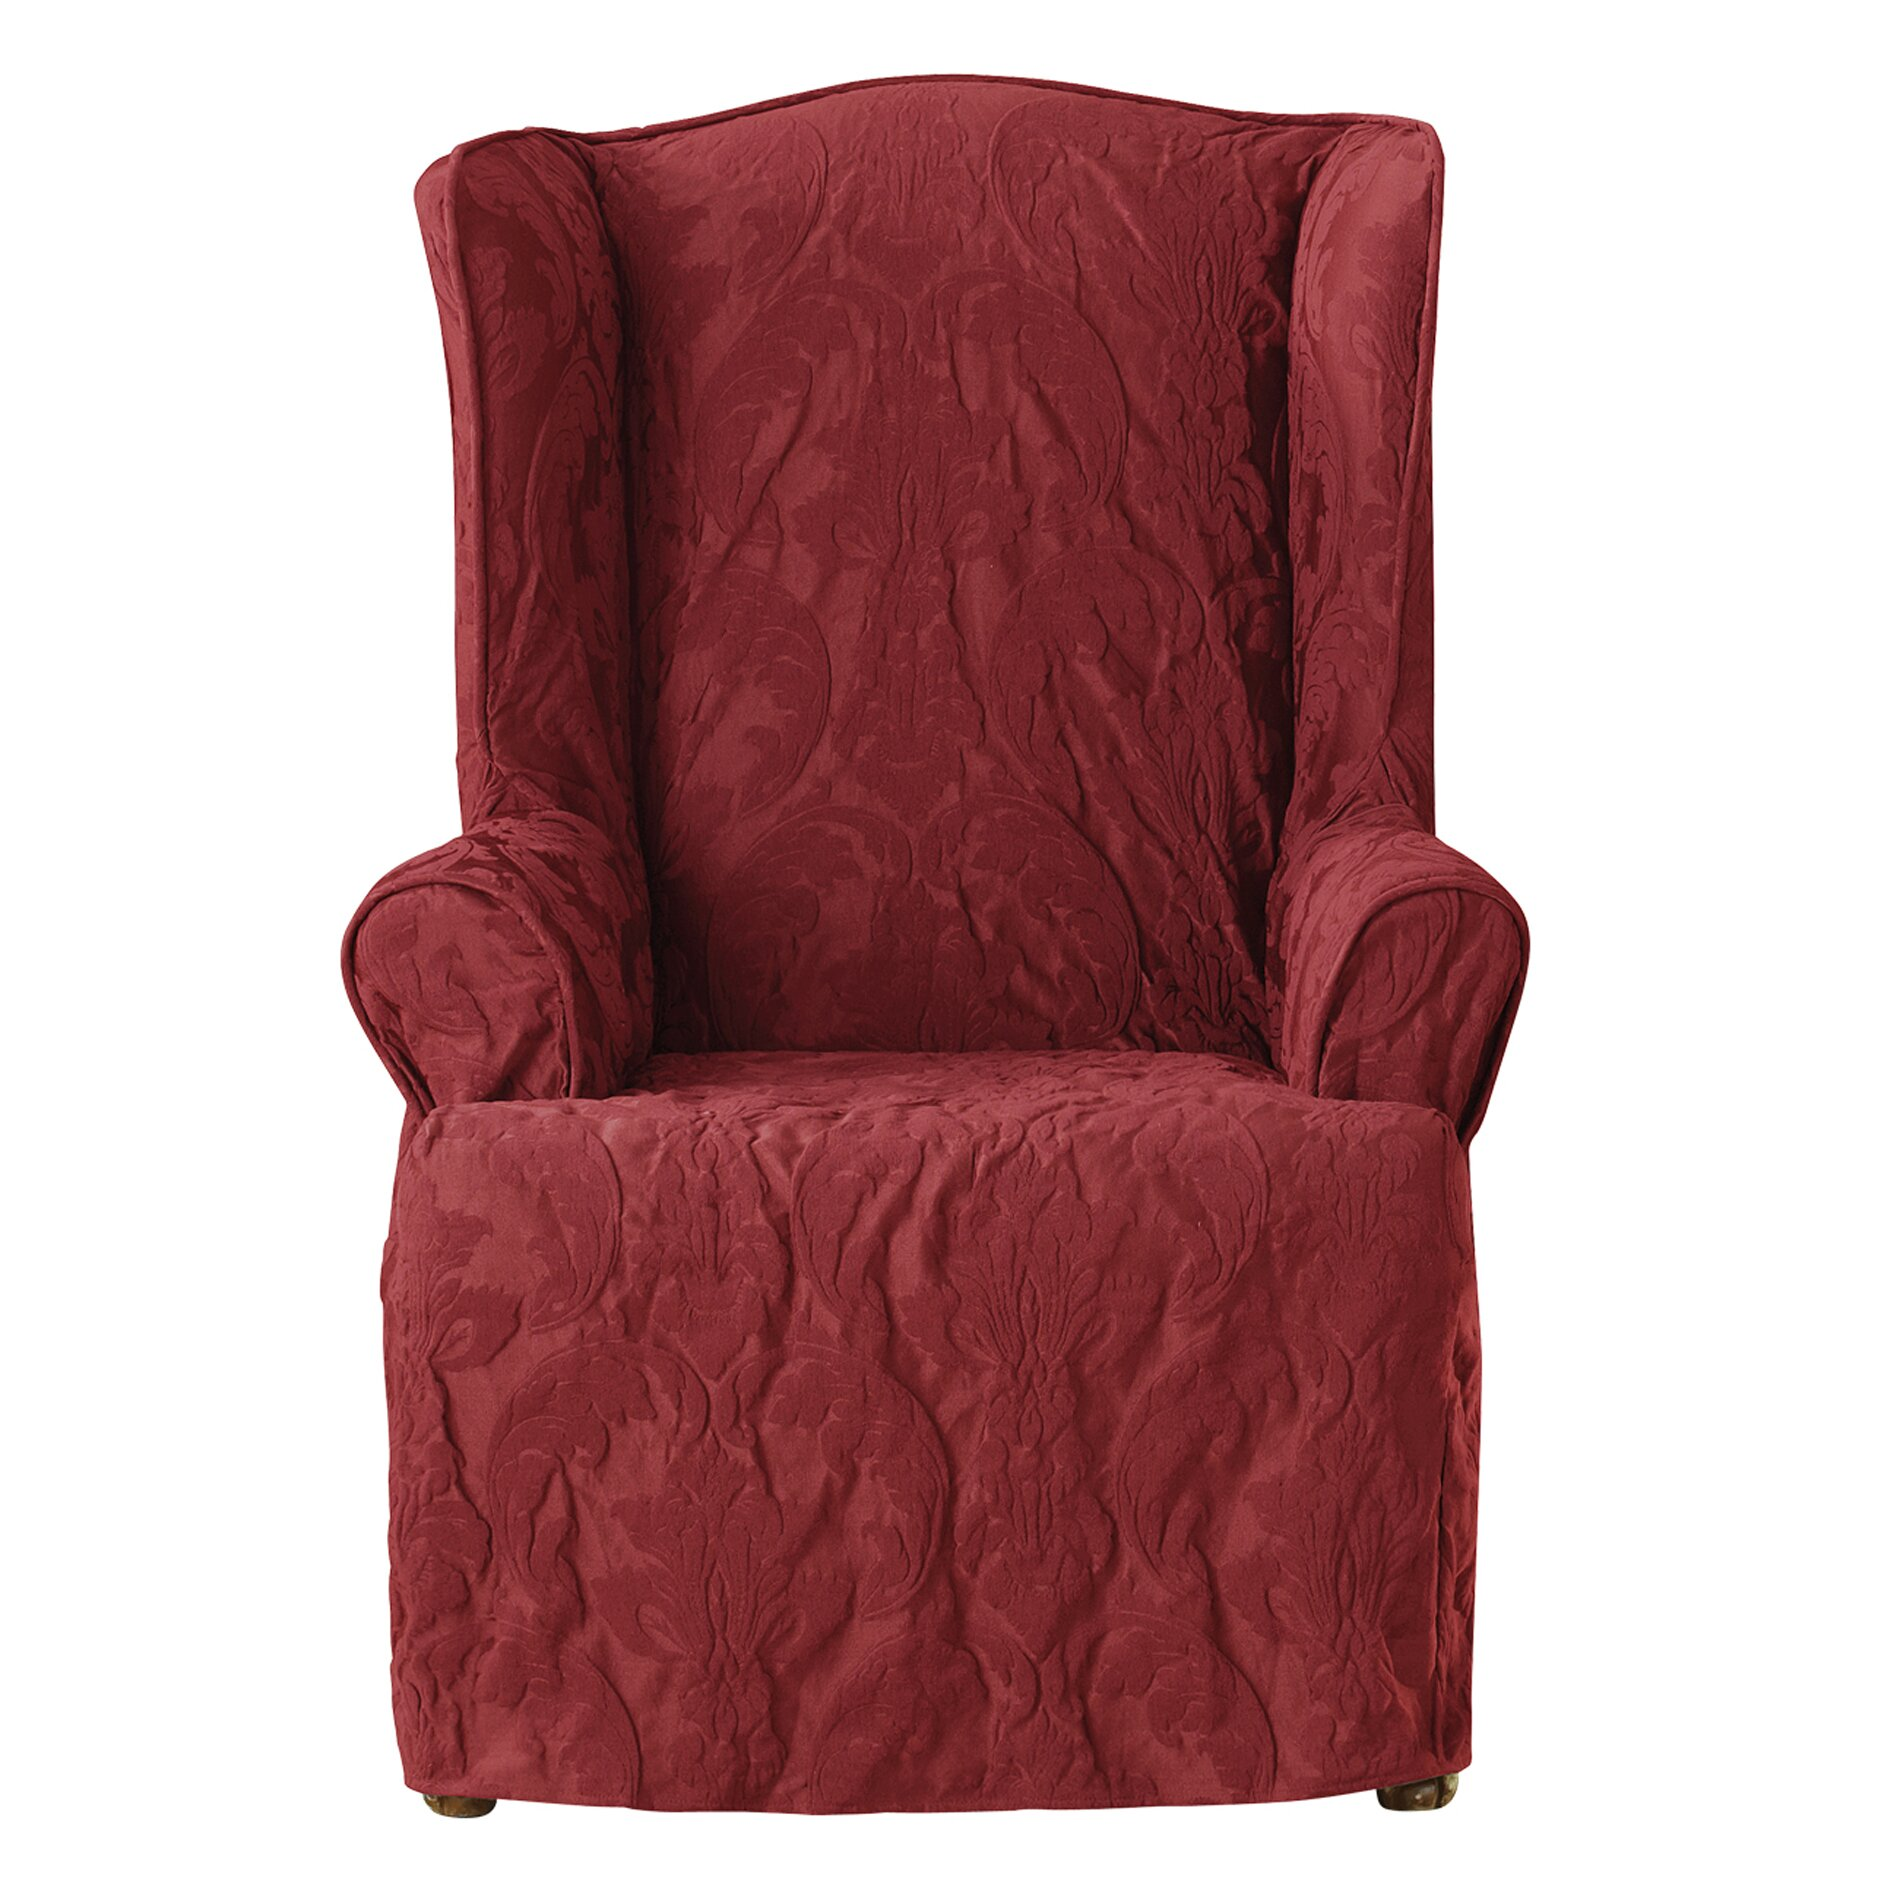 Sure Fit Matelasse Damask Wing Chair Slipcover & Reviews